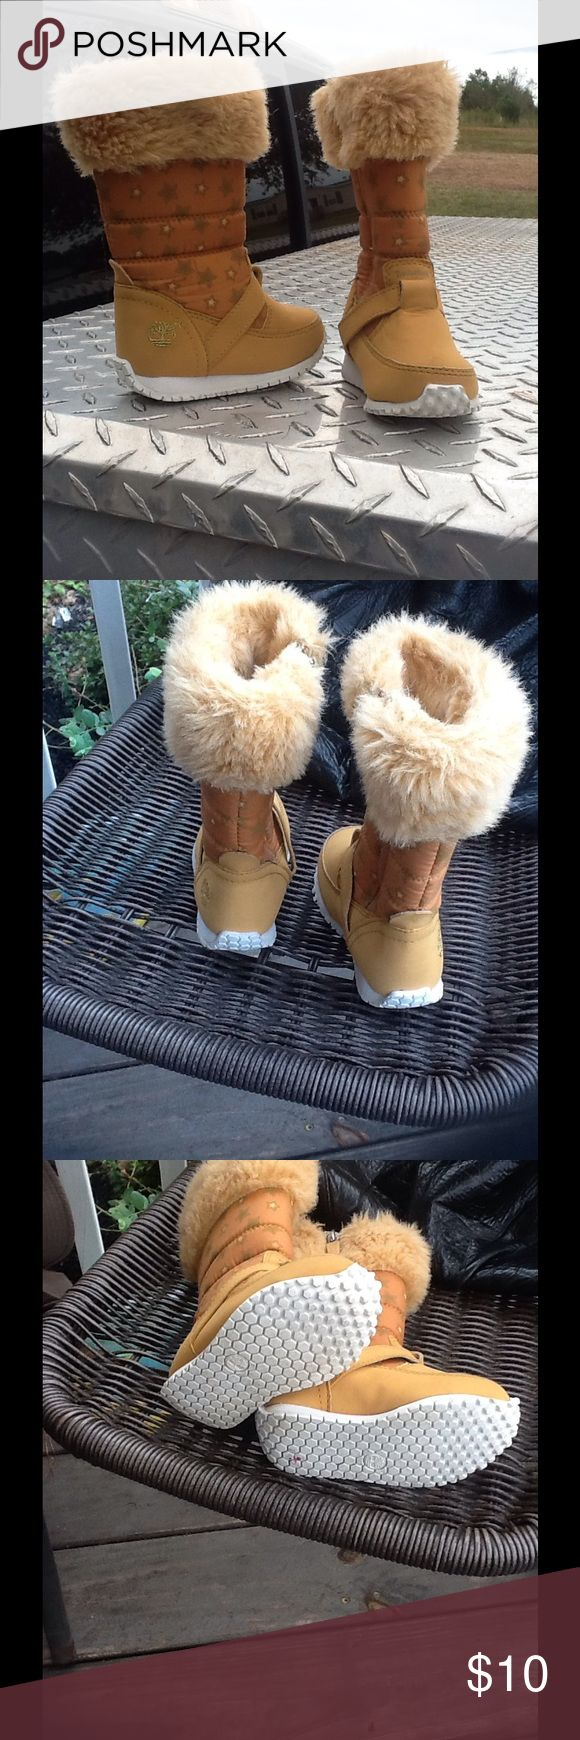 Baby Girl Timberland So stinking cute!! Girls T5 Timberland,zips up the side, good cond. Timberland Shoes Boots